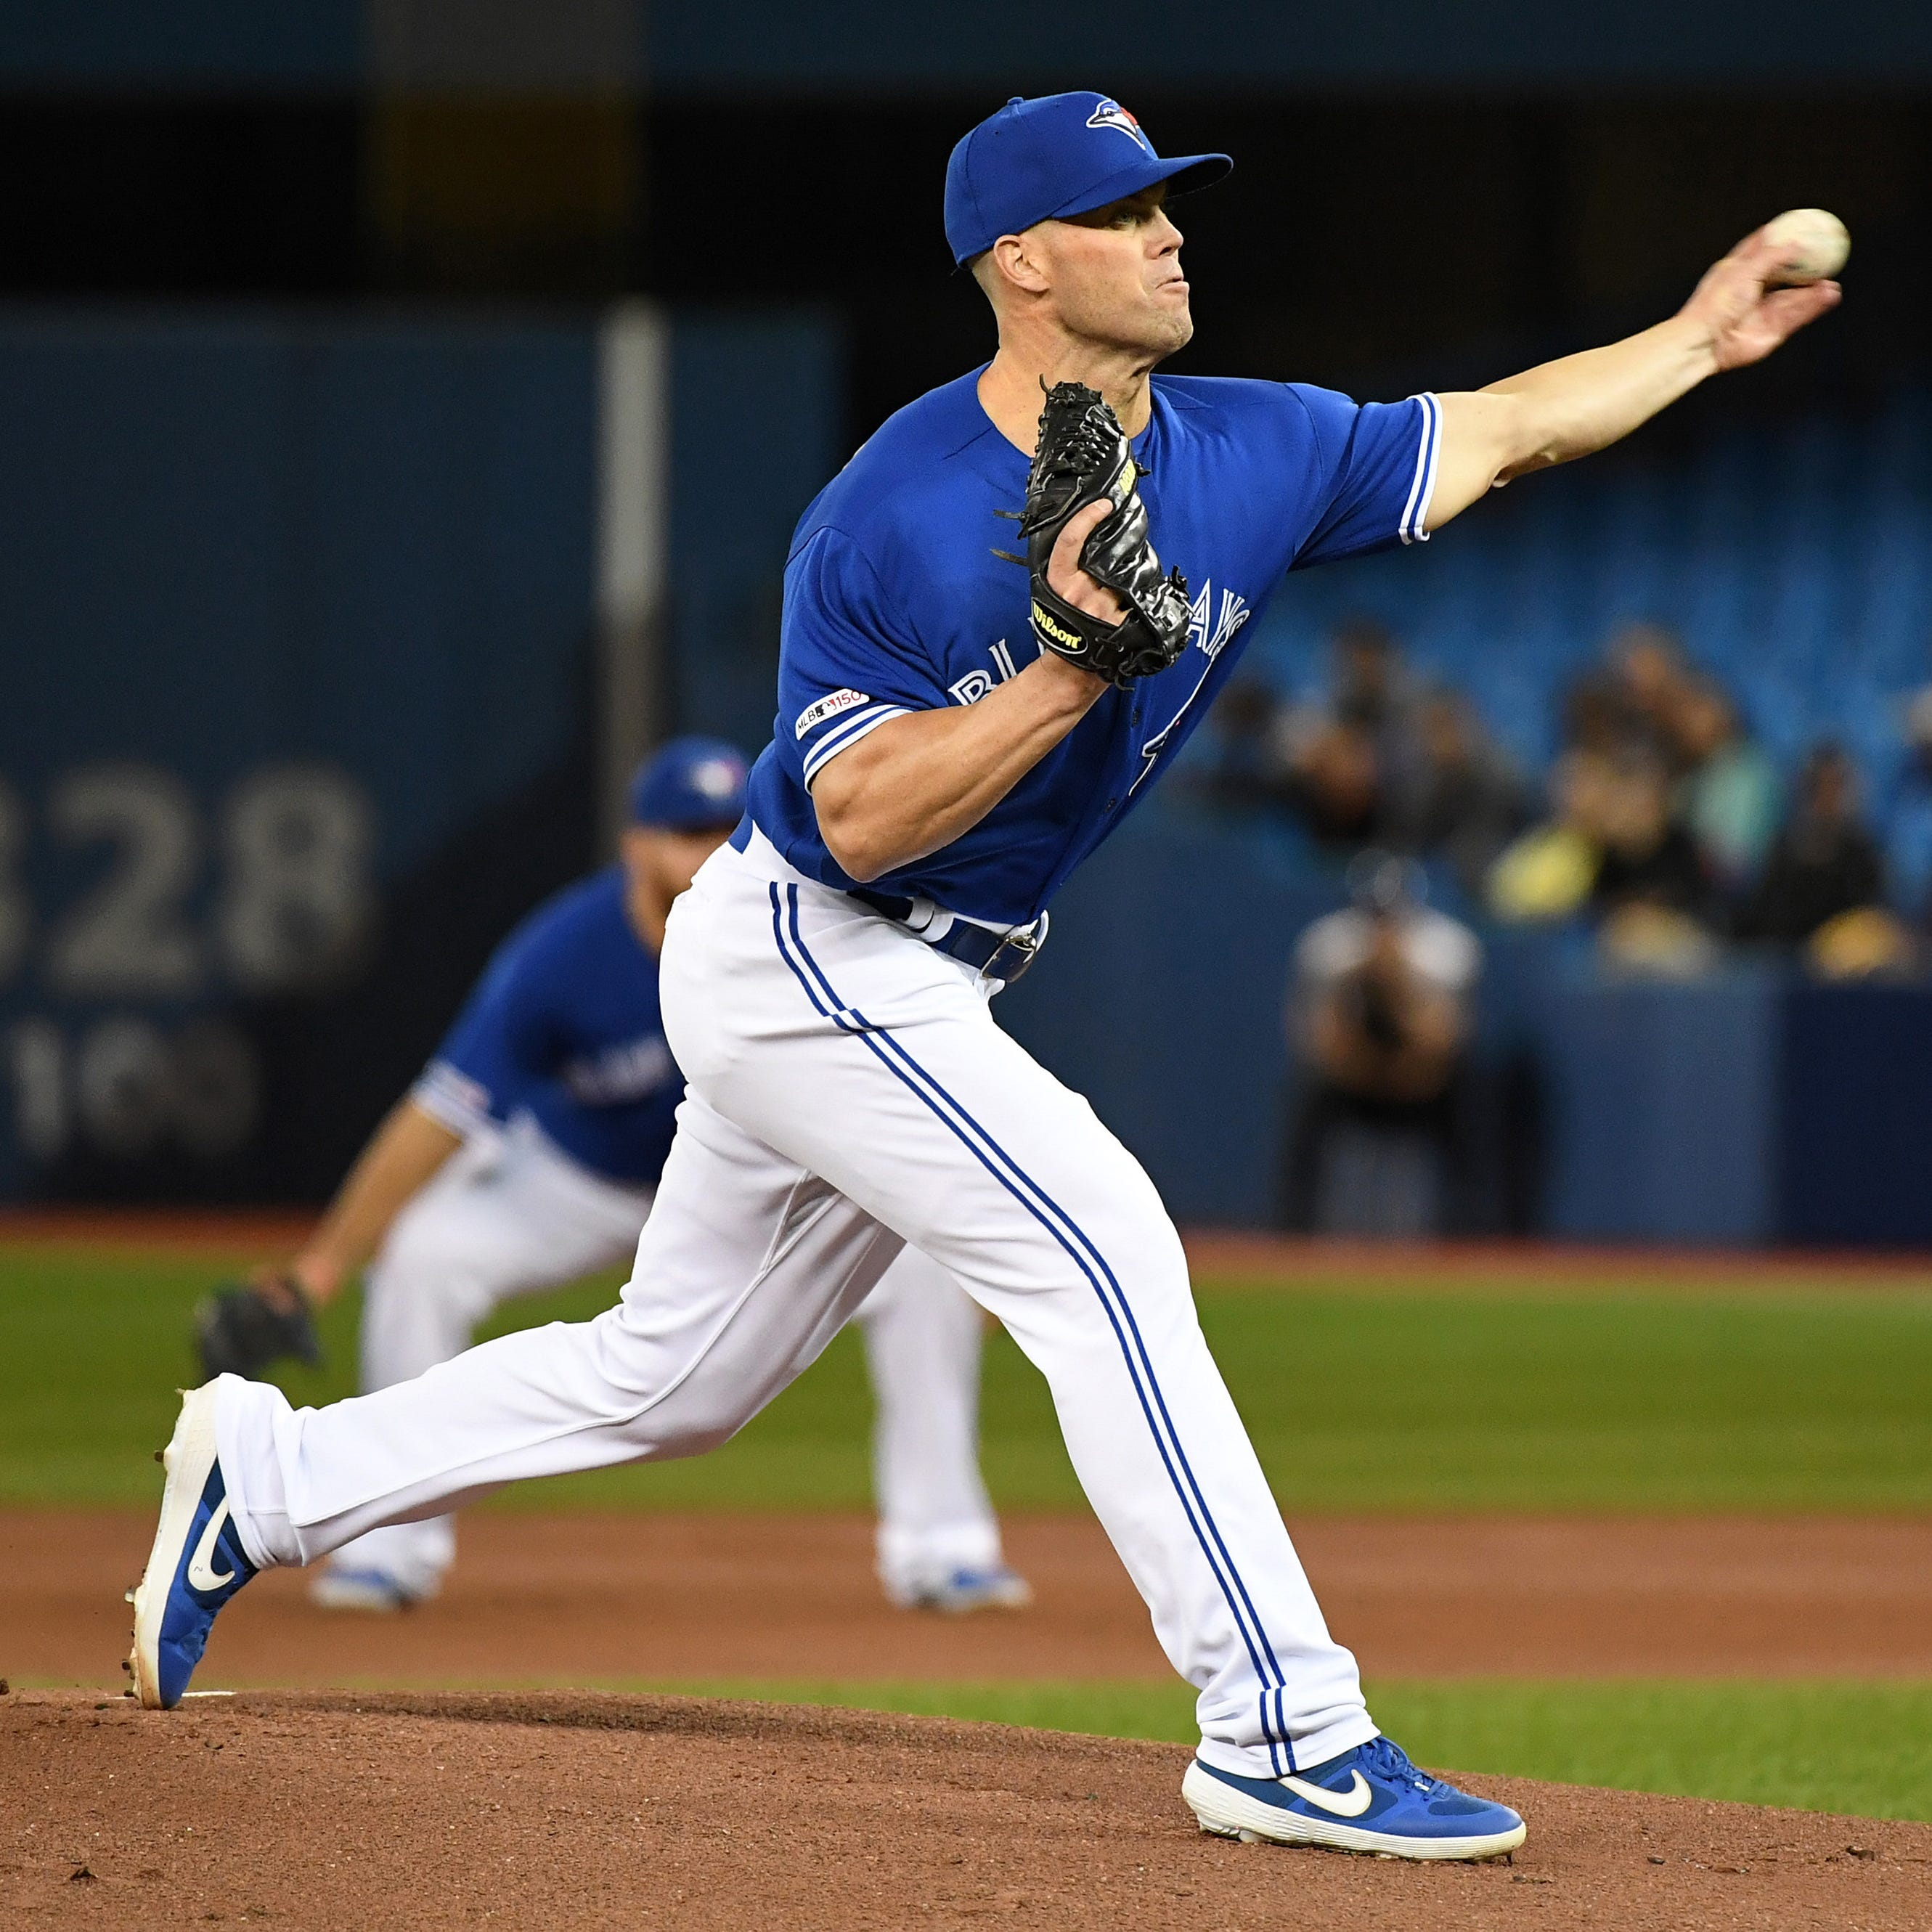 Lafayette native Clayton Richard makes first start for Toronto Blue Jays